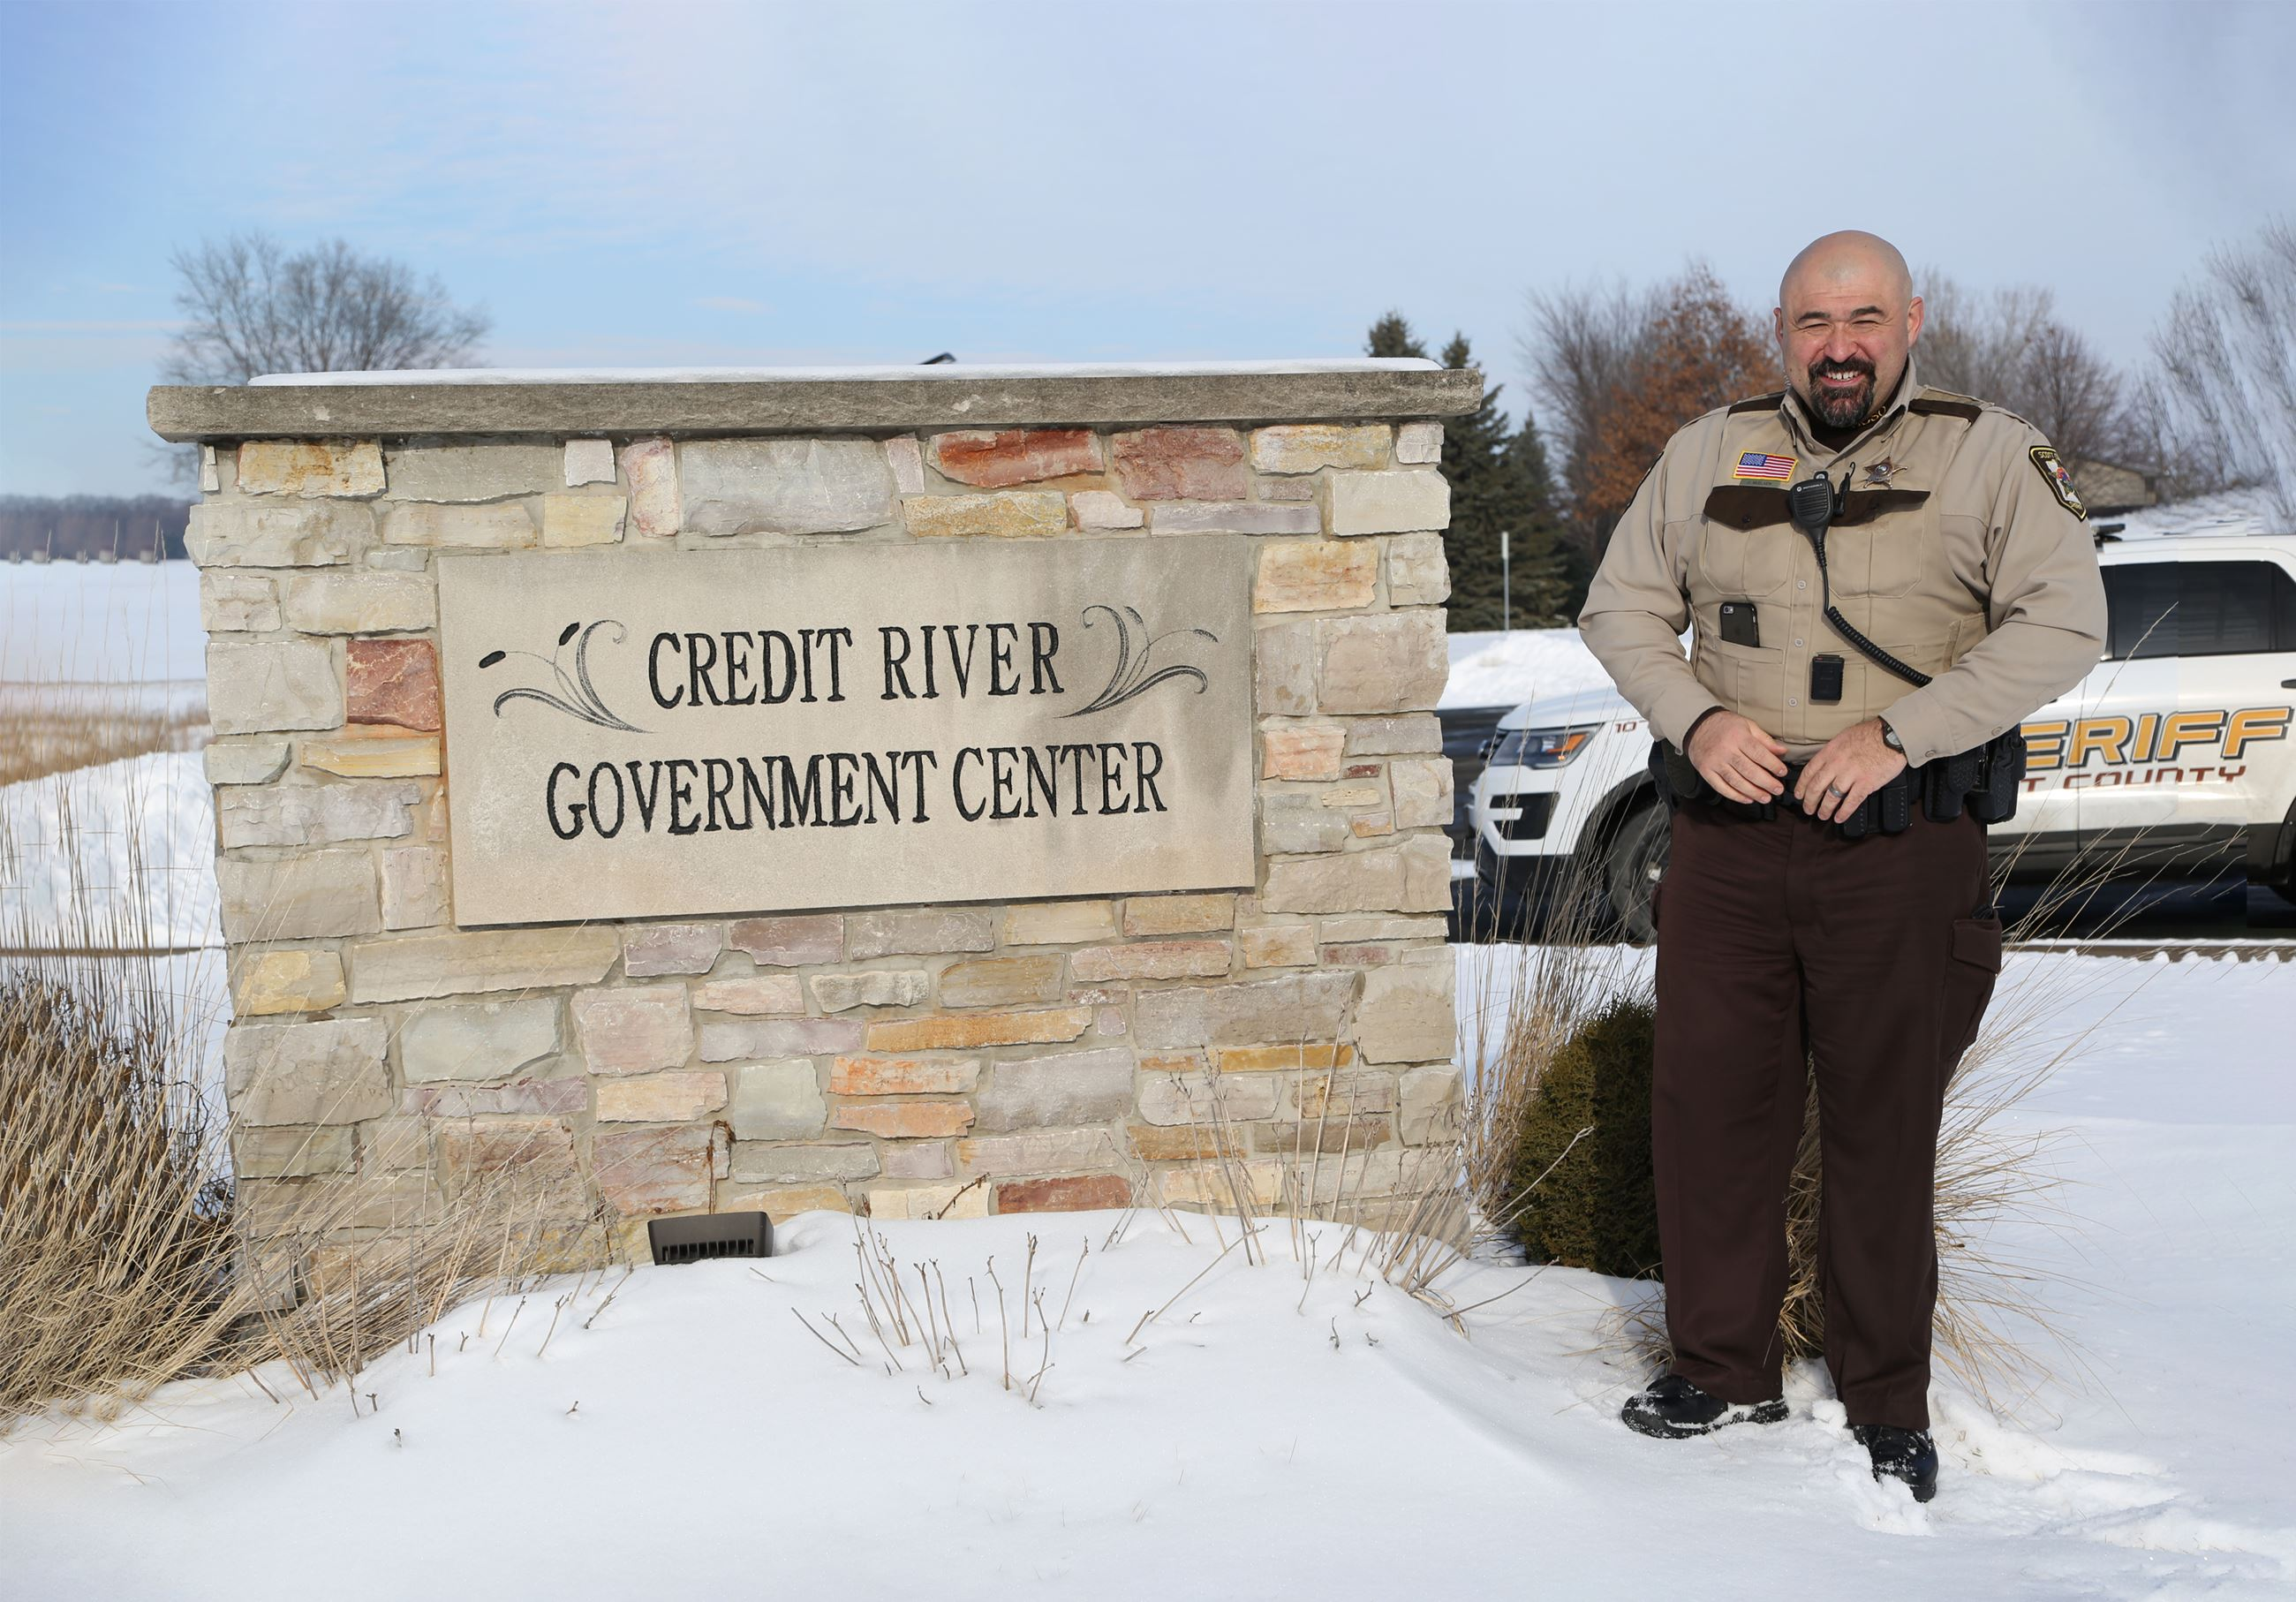 Deputy Jason Muelken assigned to City of Credit River